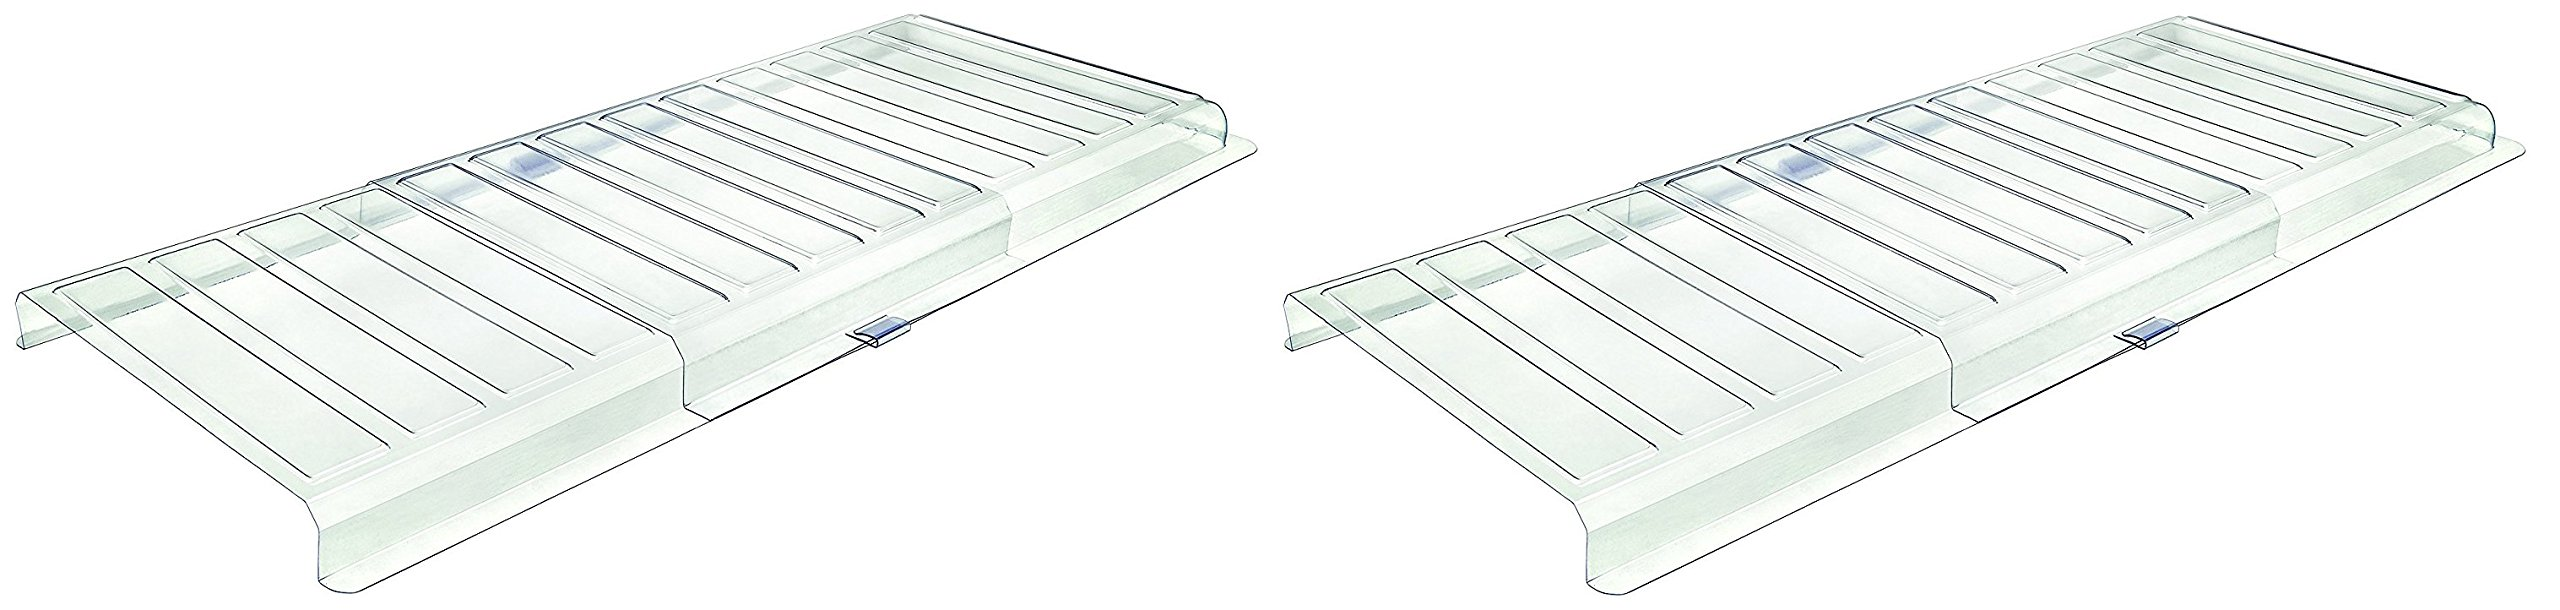 Deflecto Under Furniture Air Deflector, Air Vent Extender, Linking Clips and Tape Included, For Use with Floor Registers up to 11 Inches Wide, White (UFAD) (Pack of 2)